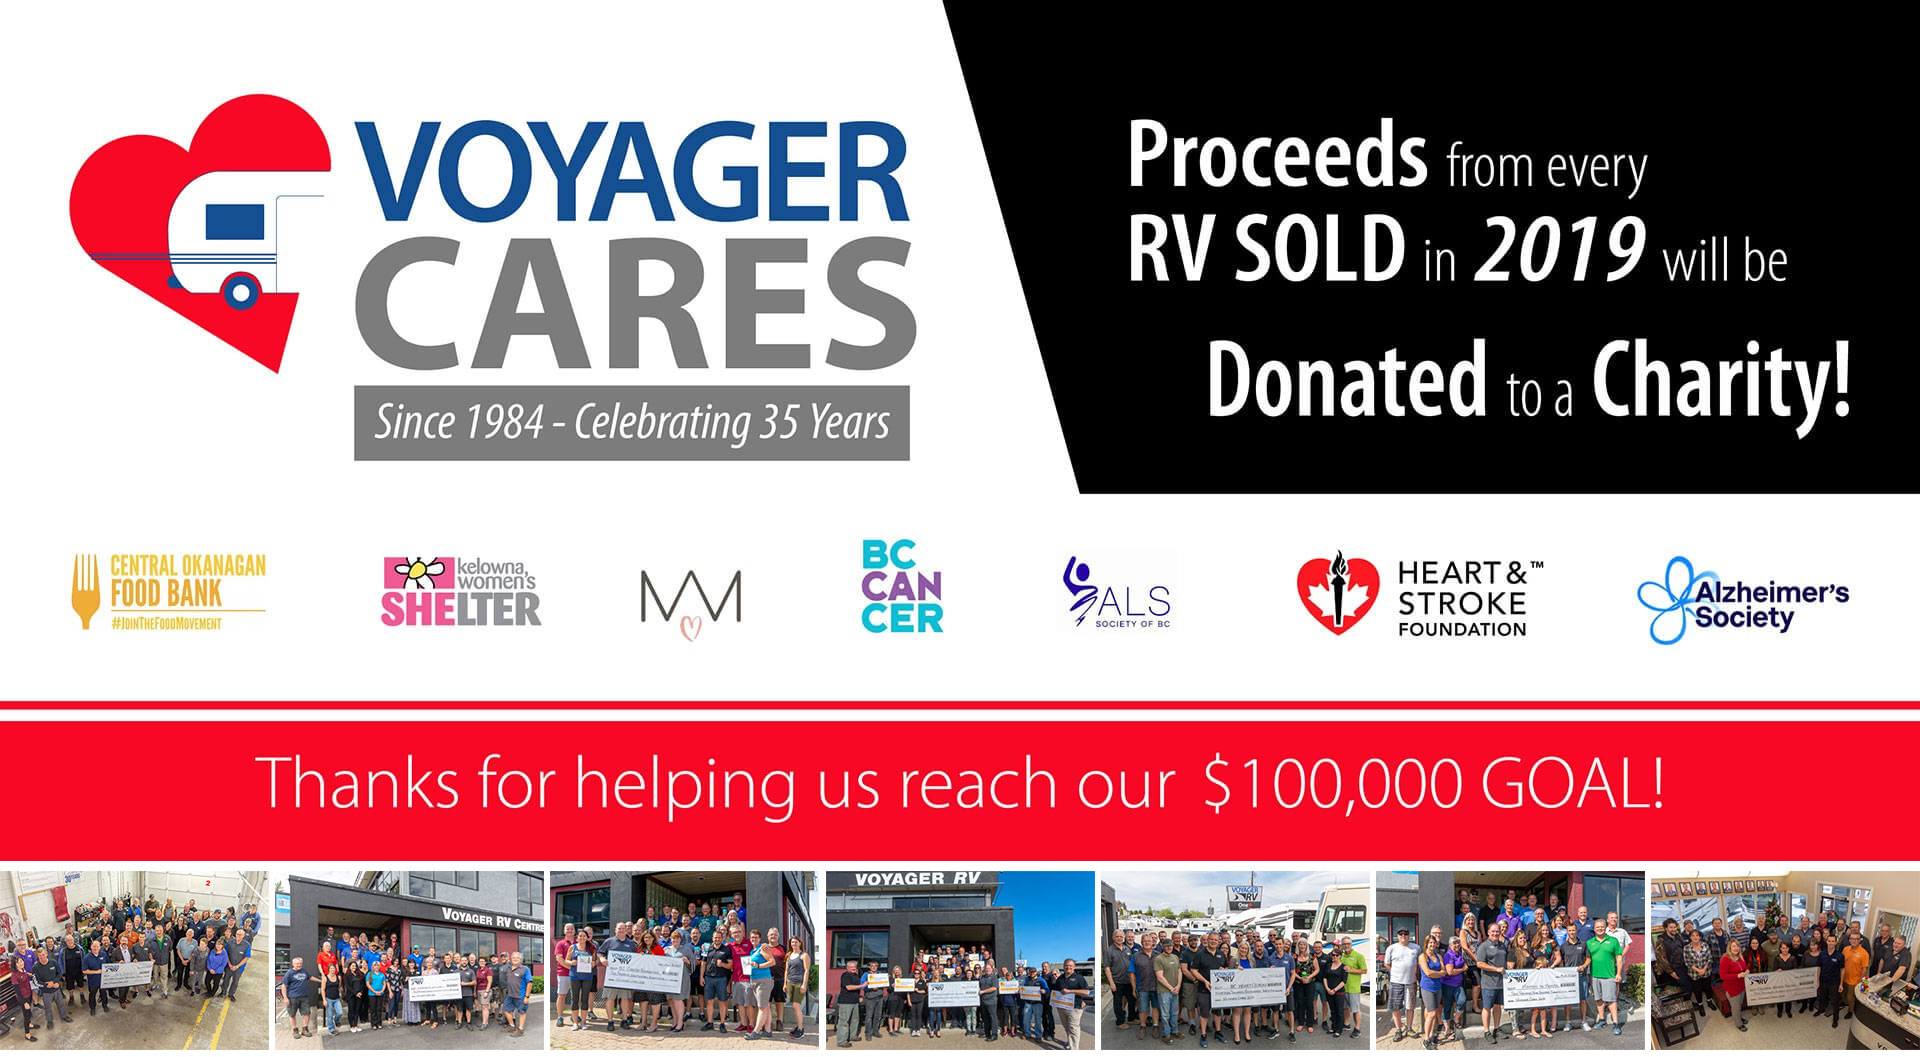 Voyager Cares Charity Drive